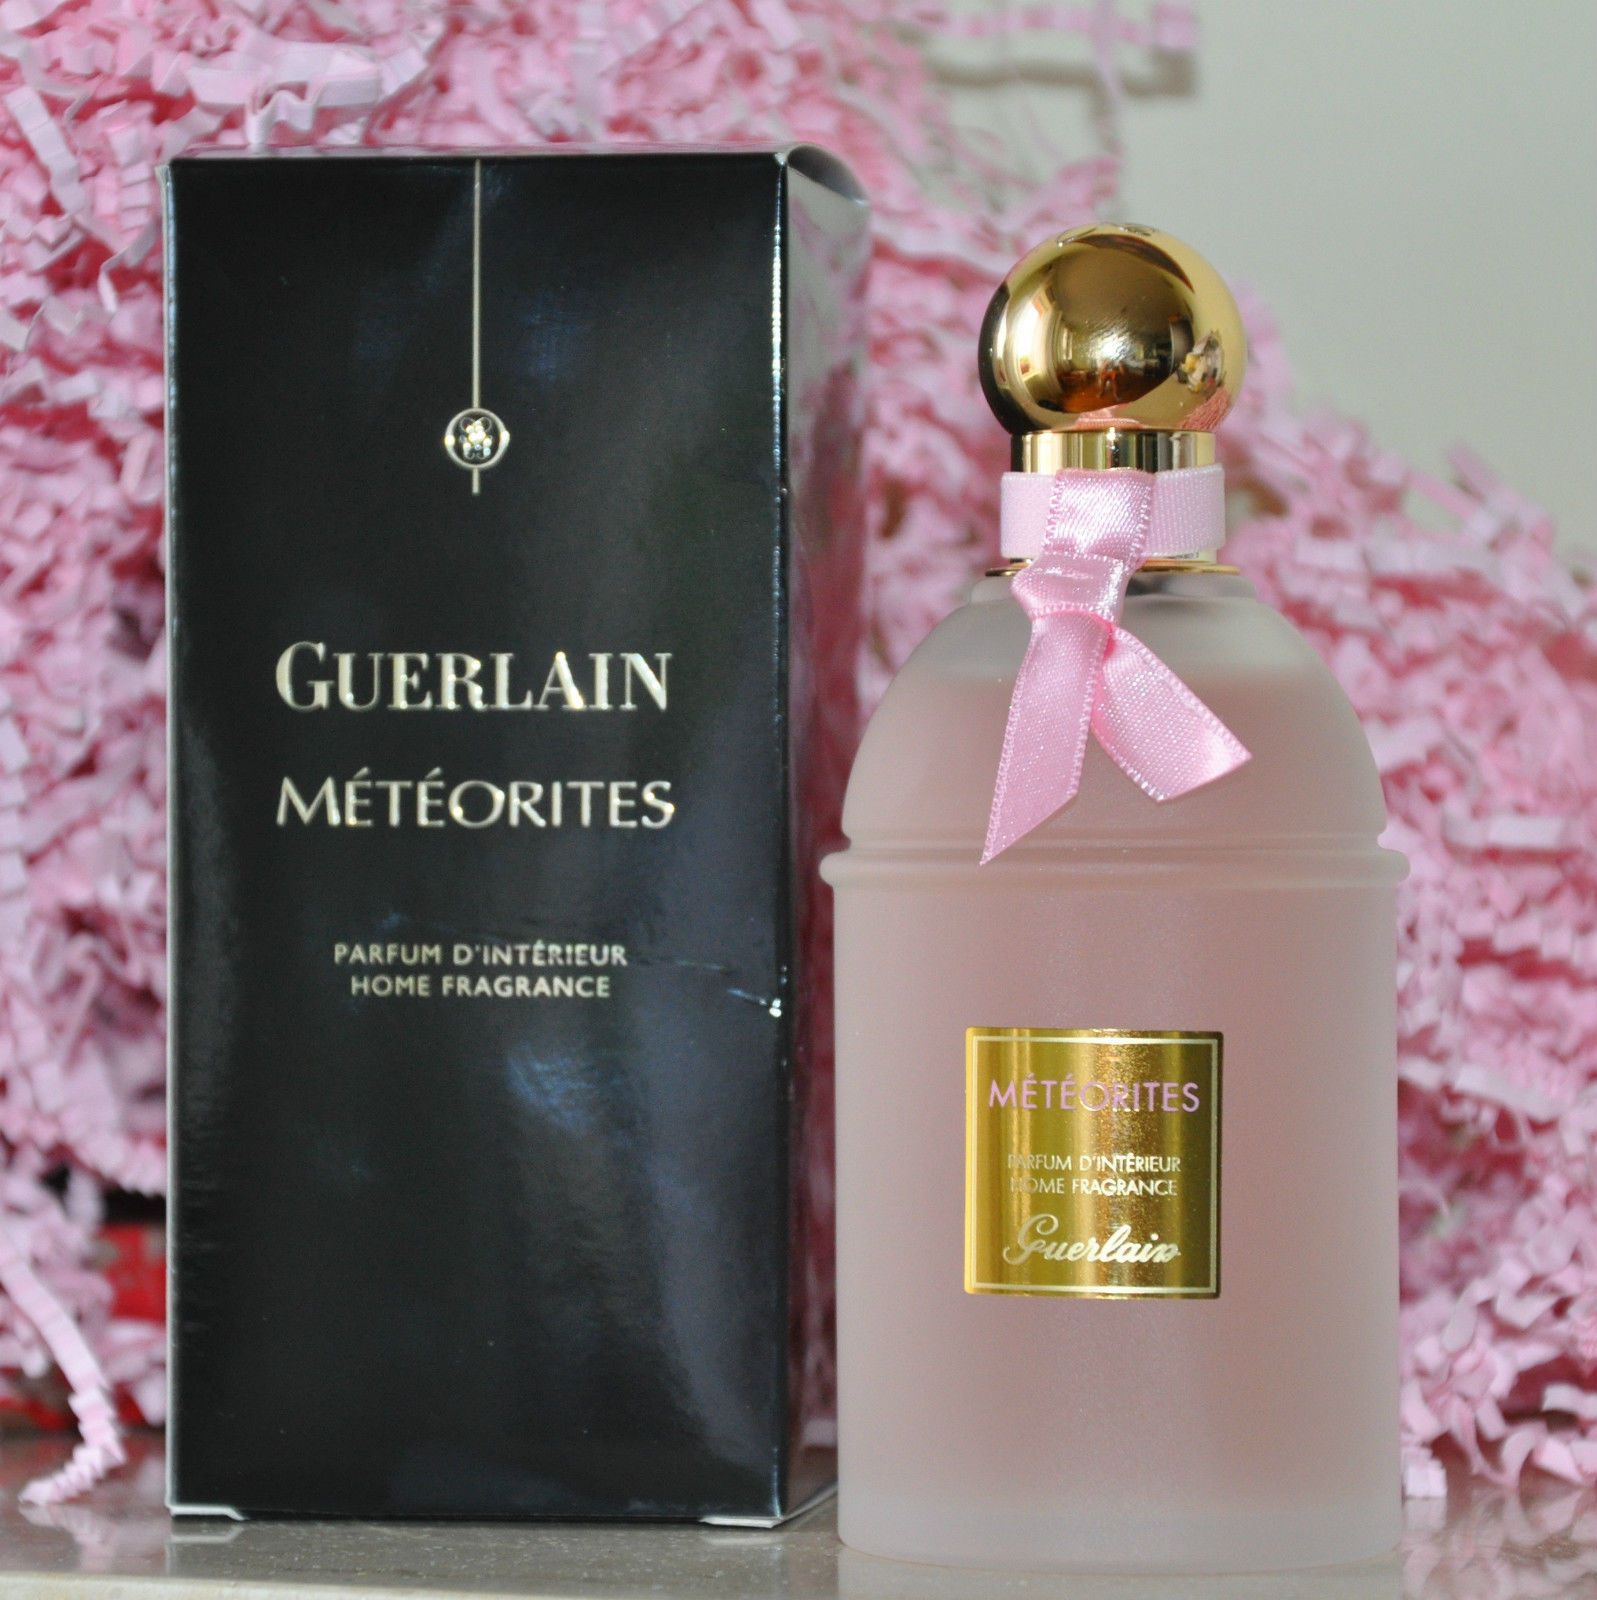 meteorites guerlain parfum d interieur home fragrance ebay meteorito pinterest fragrance. Black Bedroom Furniture Sets. Home Design Ideas